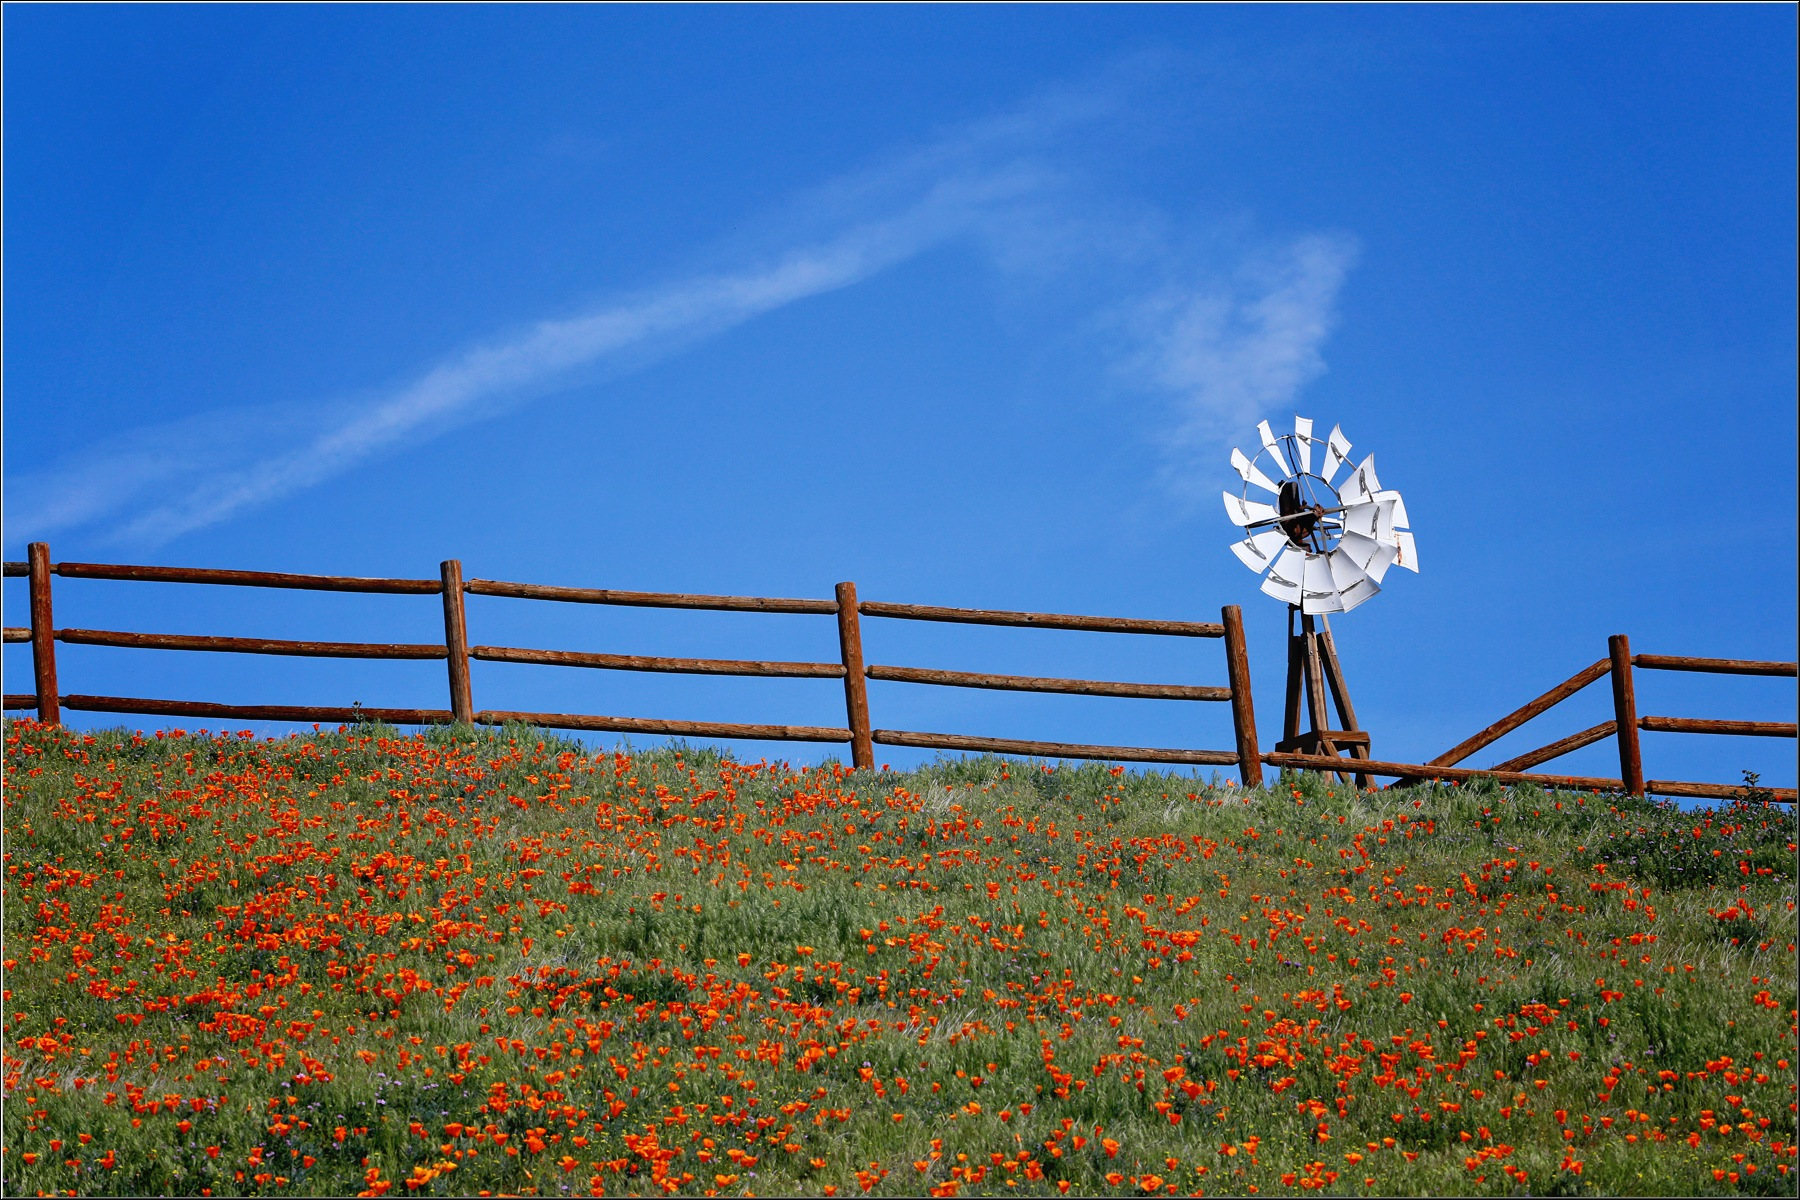 Windmill and Poppies by Linda Ruiz